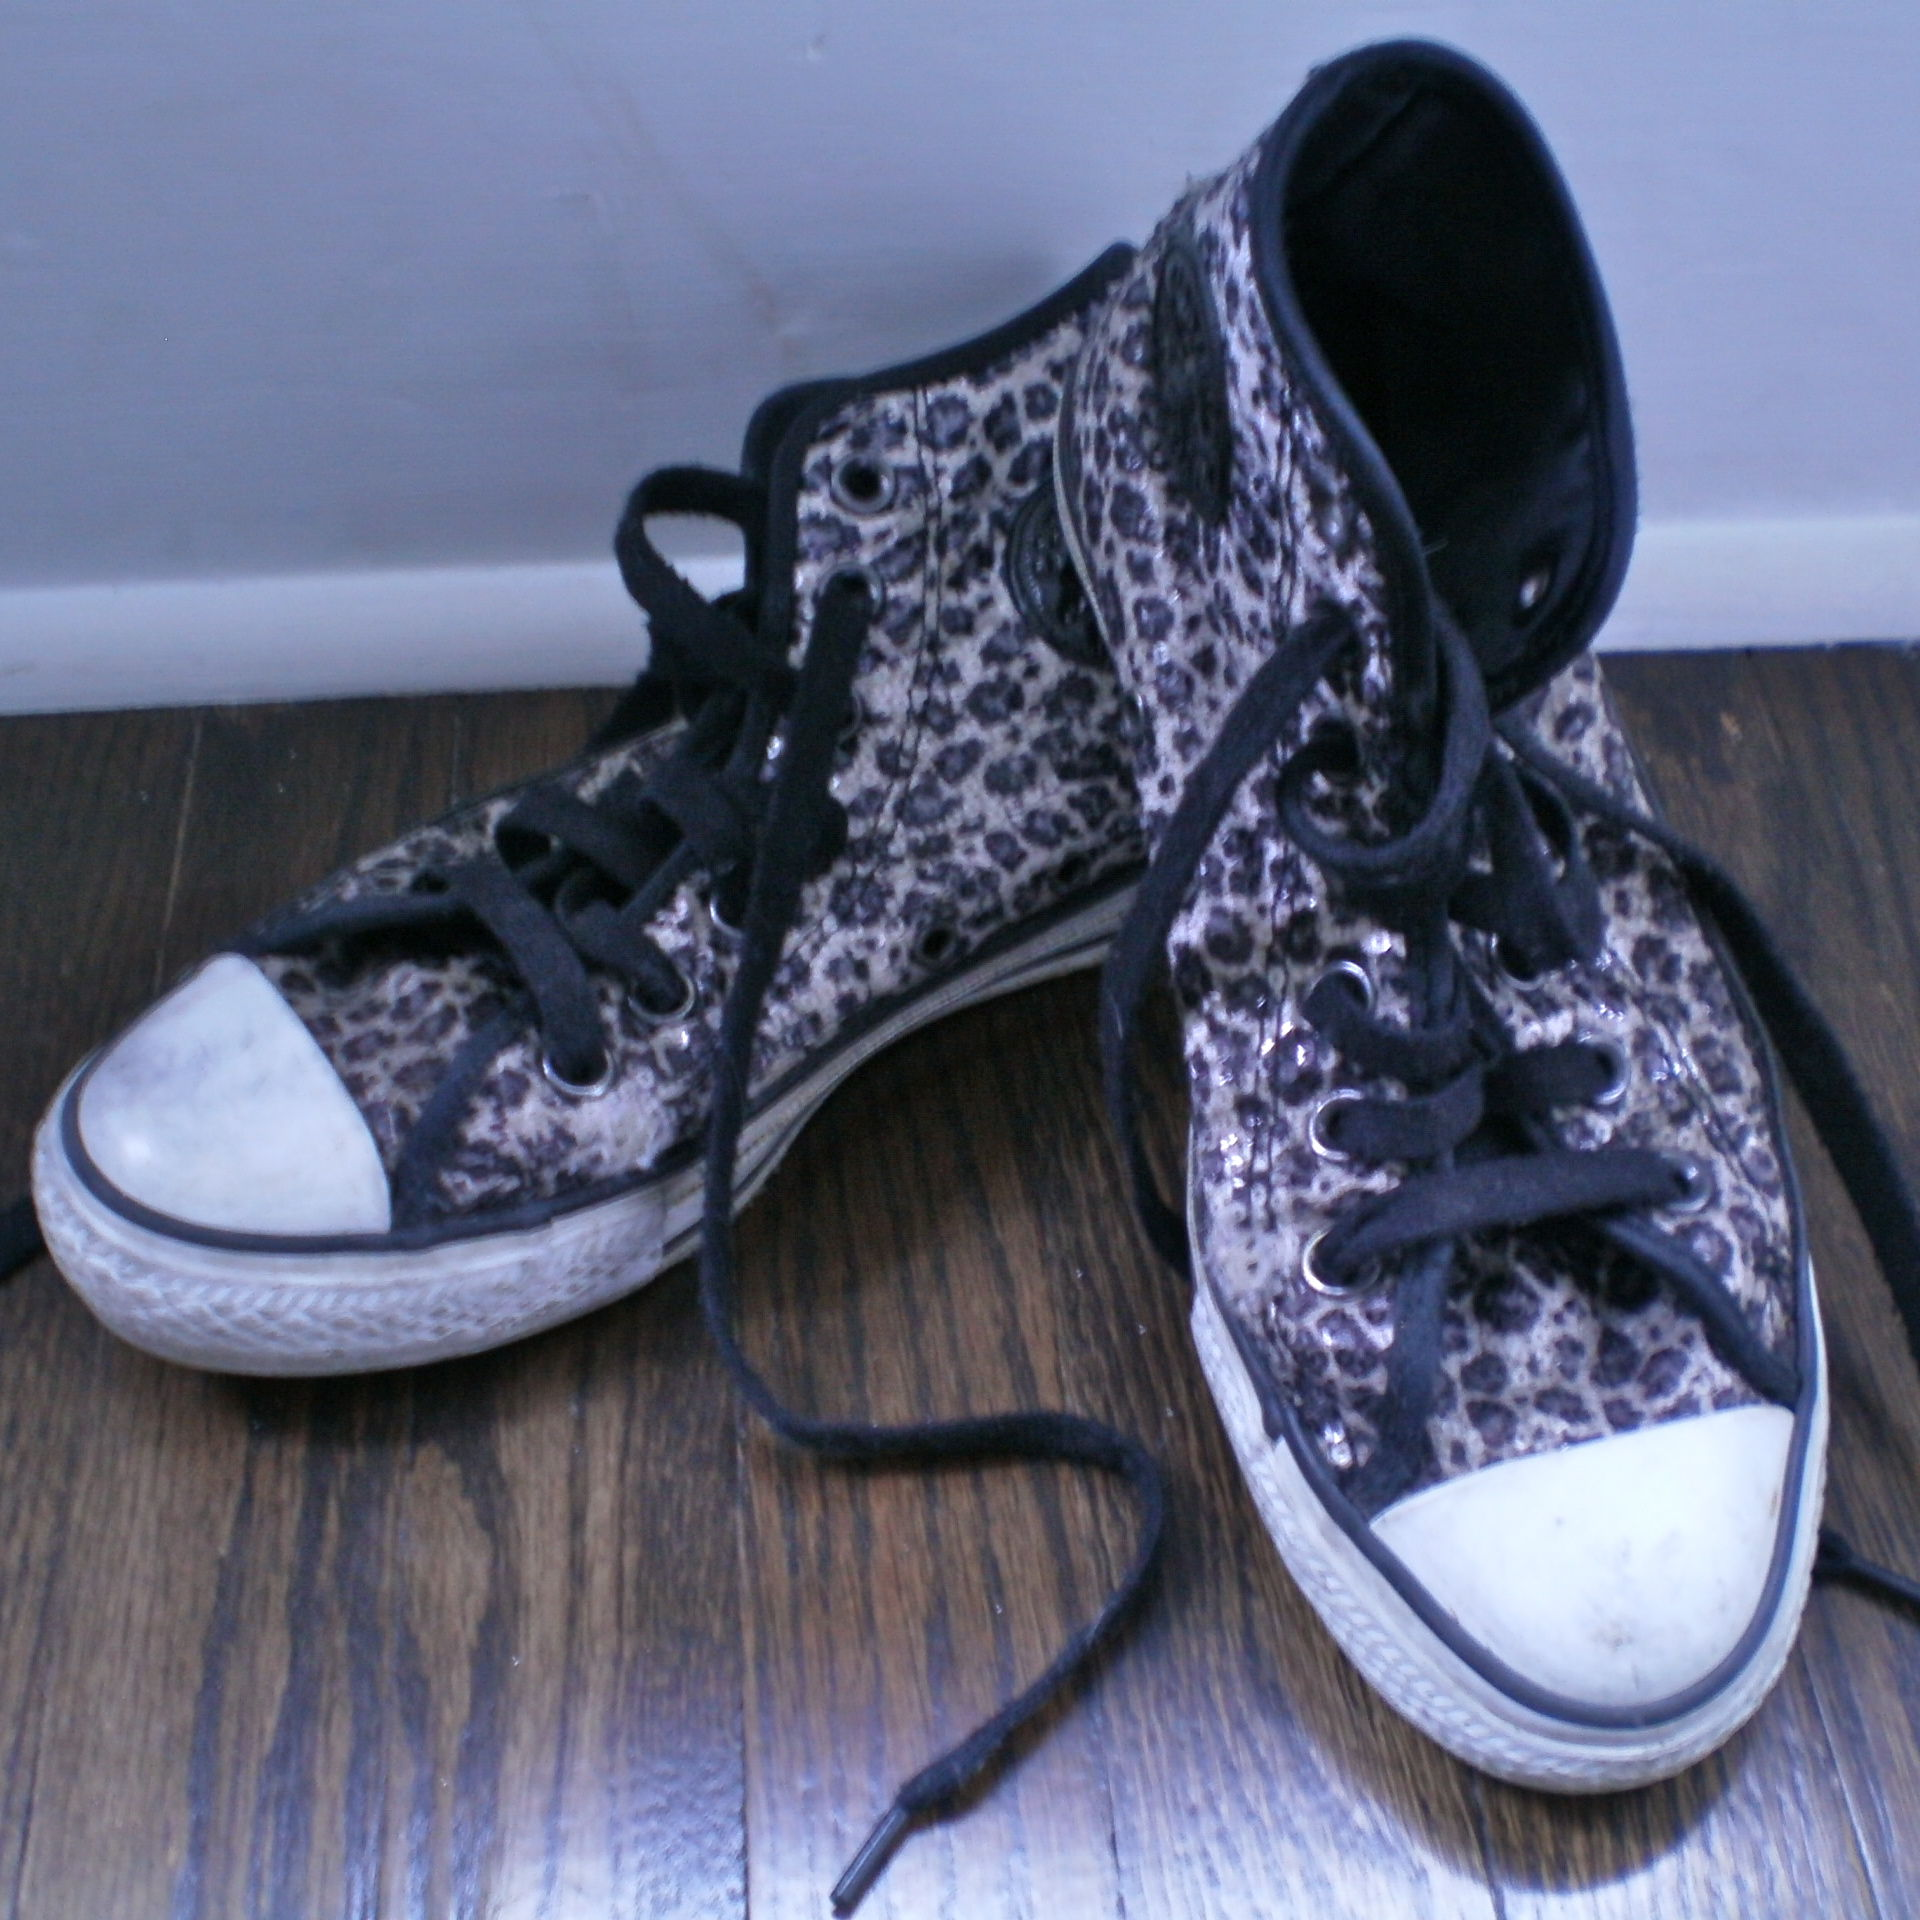 (On The Way Out) From My Closet – May 18th, 2013